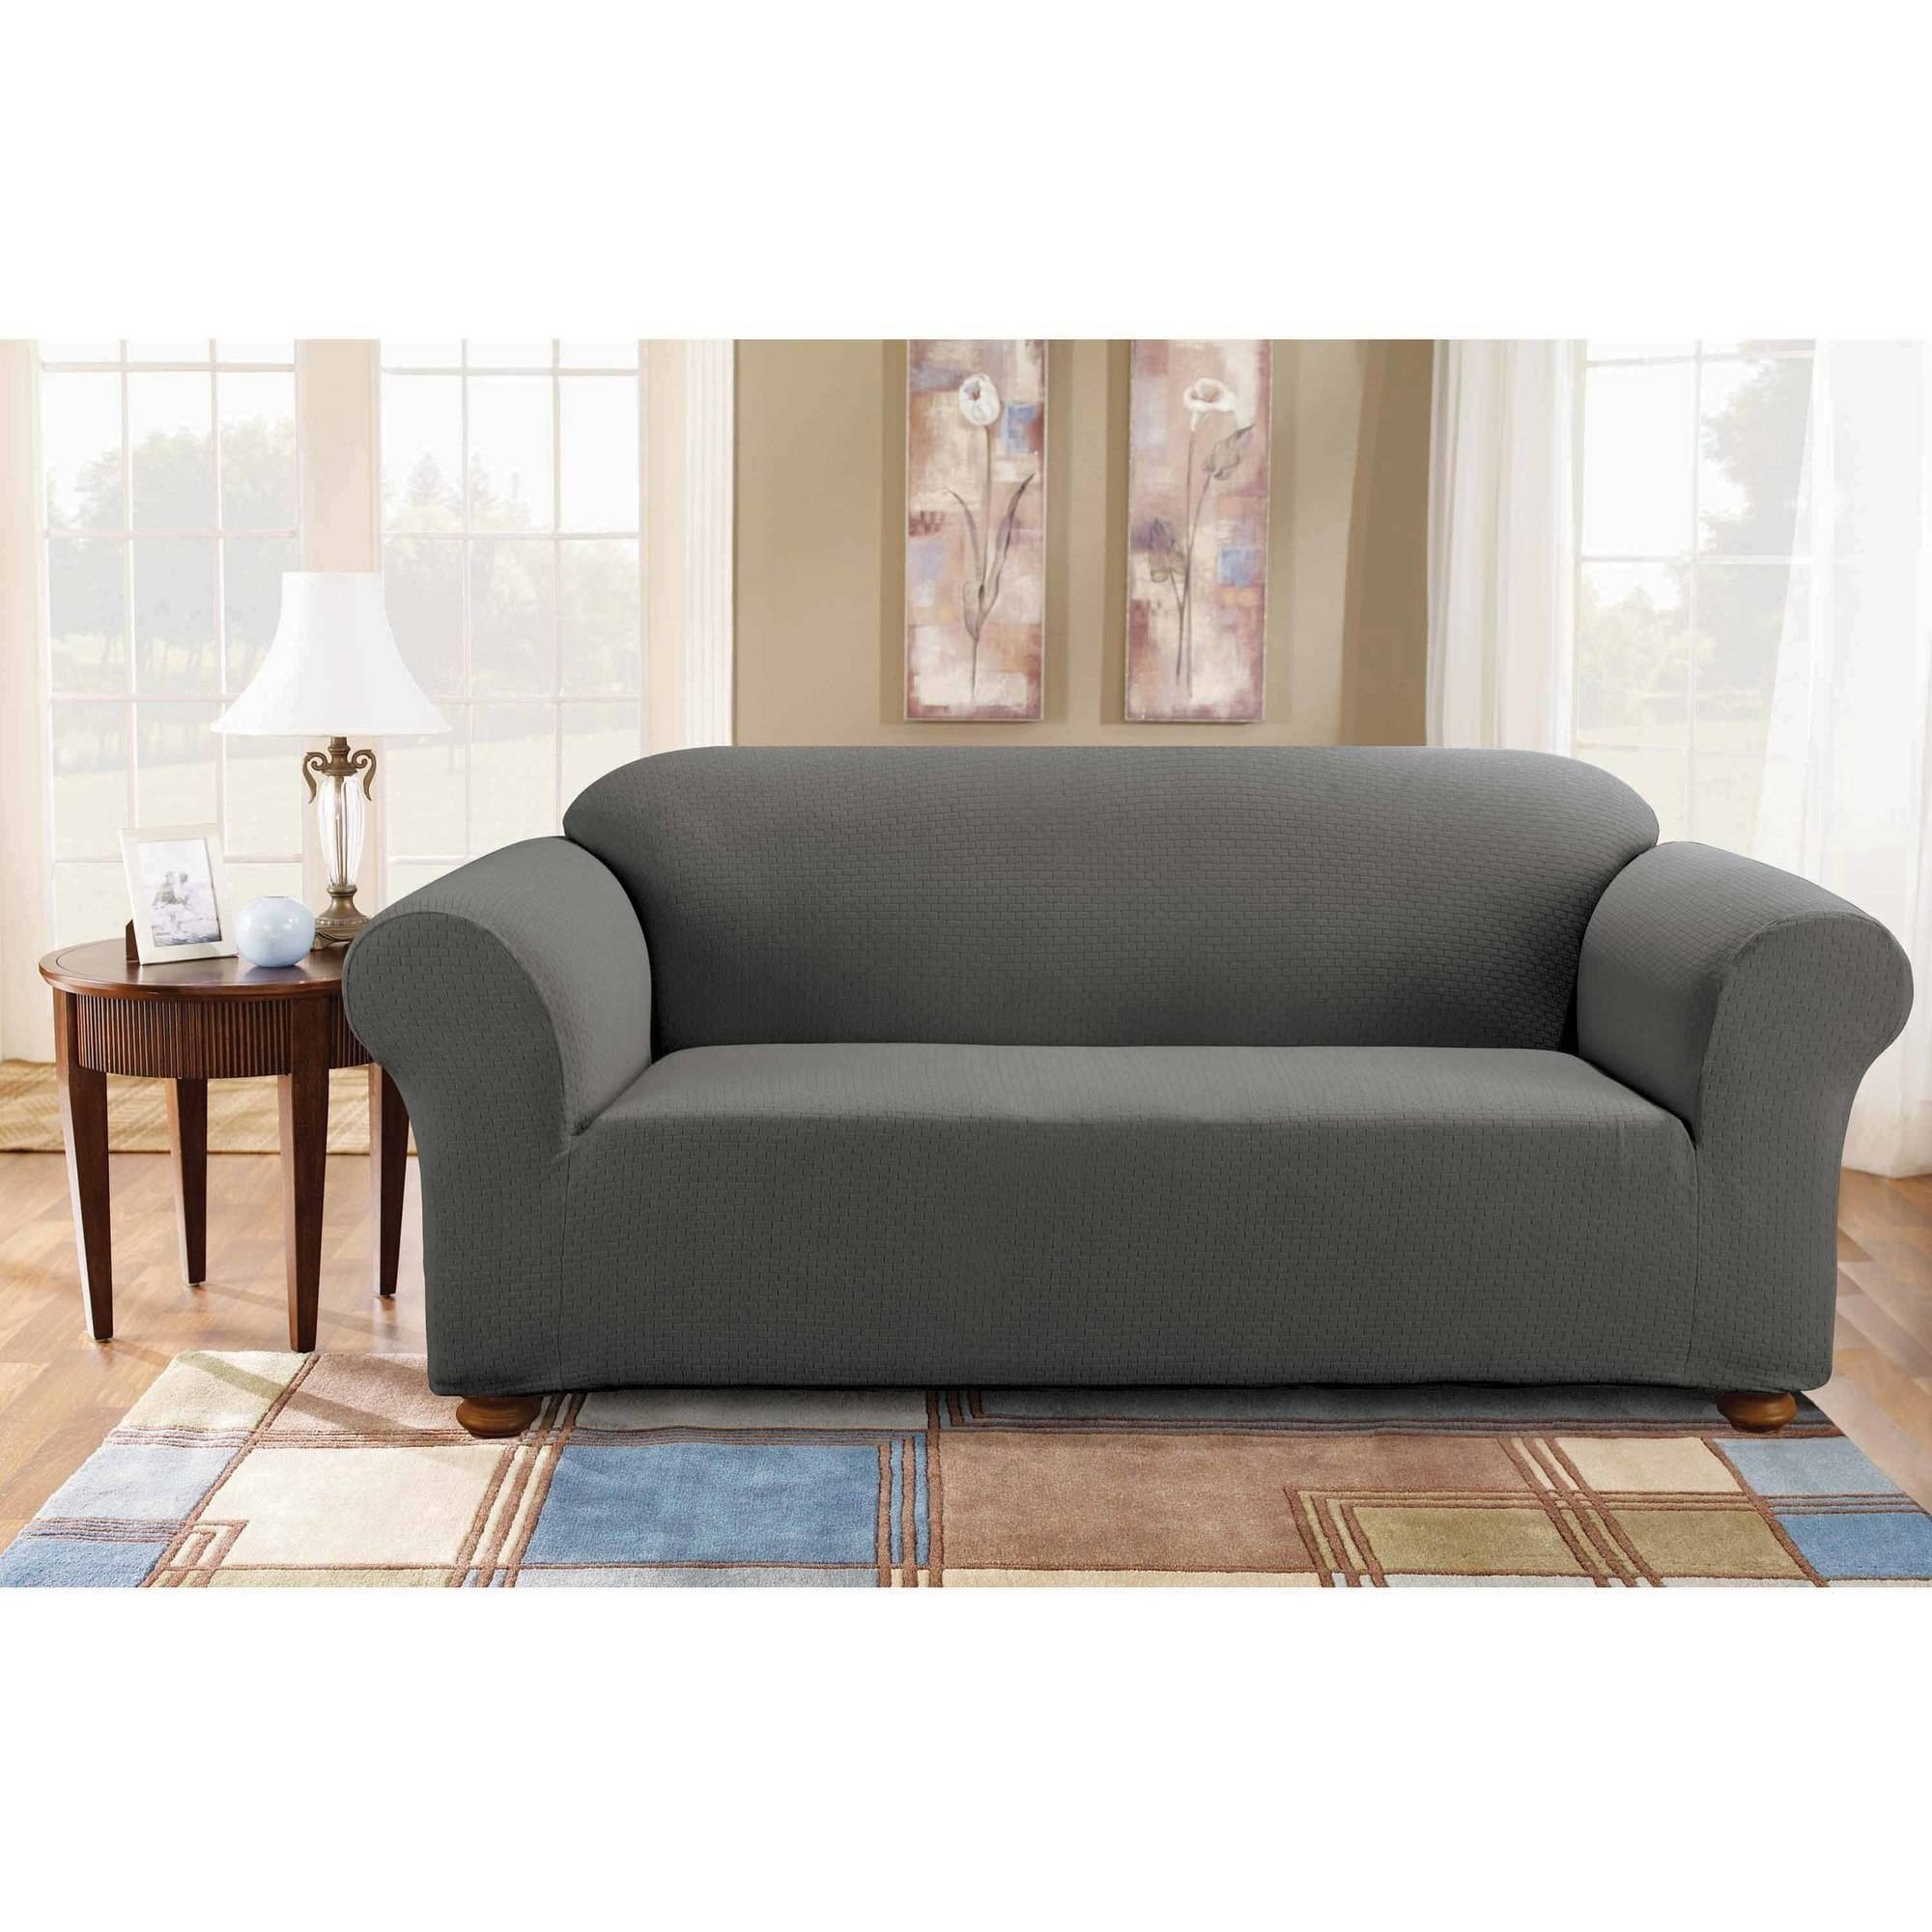 Furniture: Slipcover Loveseat T Cushion | Loveseat Slipcovers In within Loveseat Slipcovers T-Cushion (Image 6 of 15)